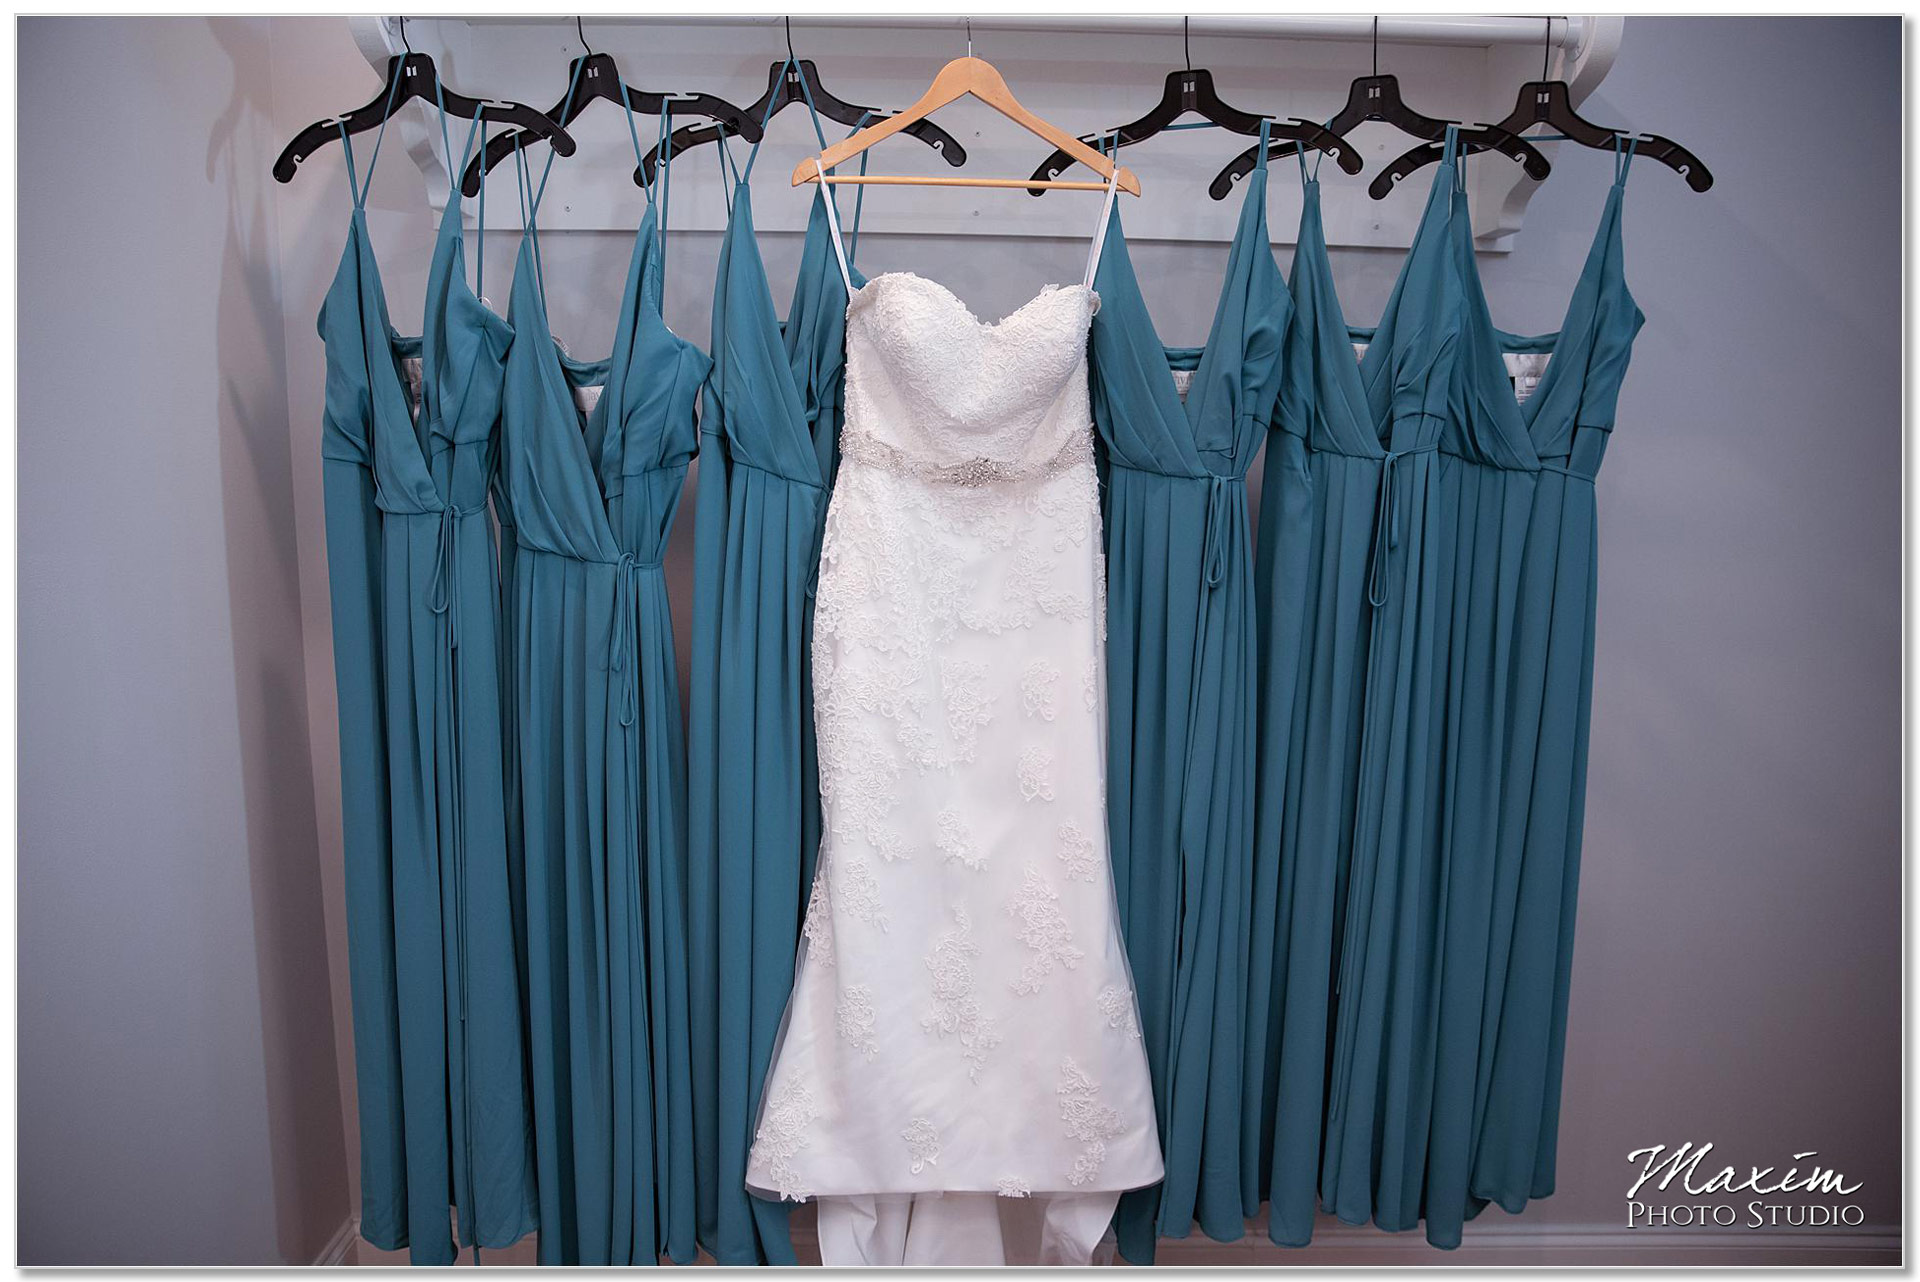 Wedding Dress, Bridesmaids Dresses, Pebble Creek Golf Club